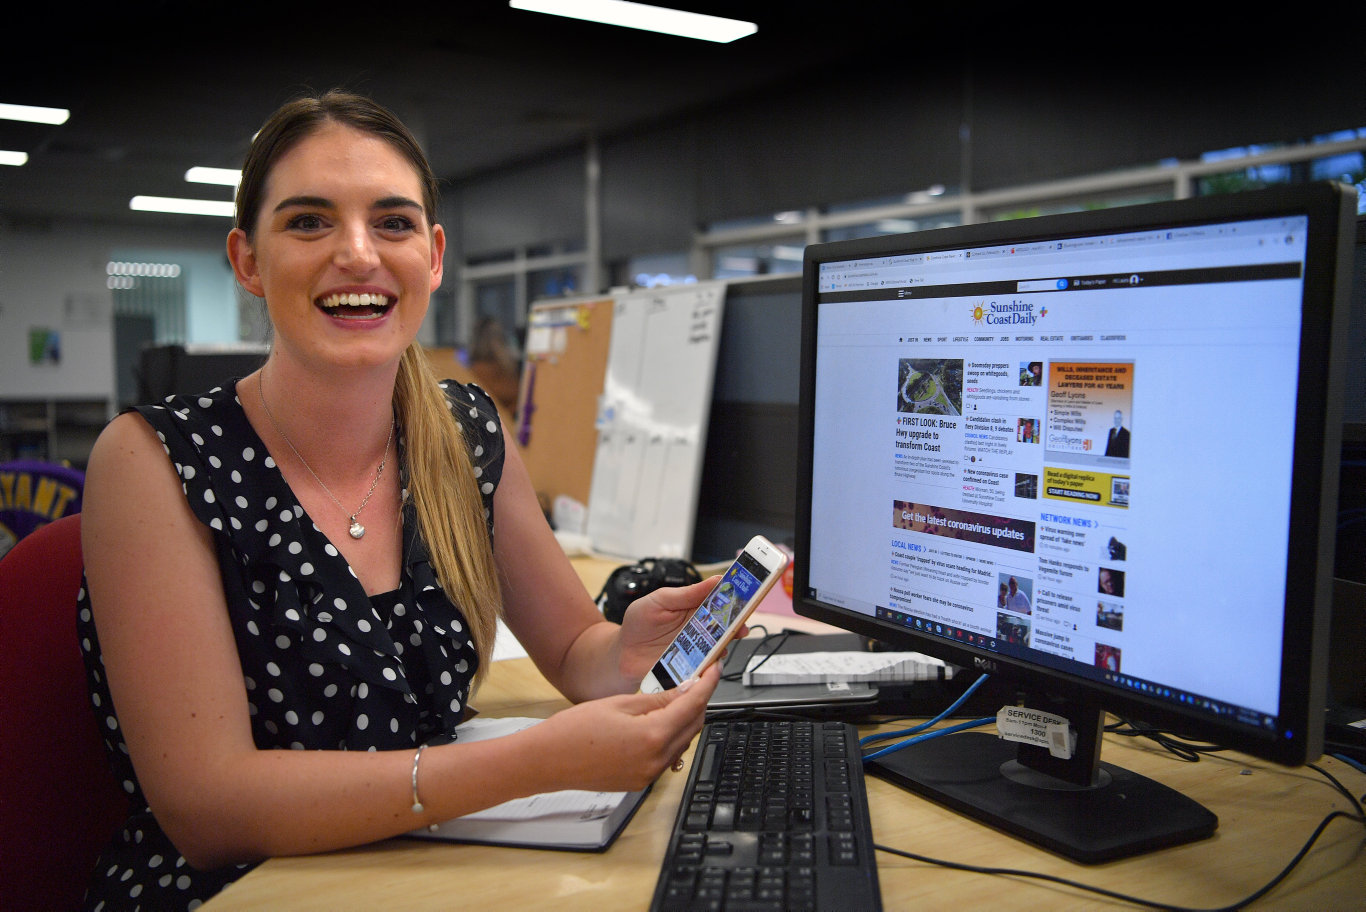 The Sunshine Coast Daily is here to provide the news that matters. Journalist Laura Pettigrew checks up on the latest news.